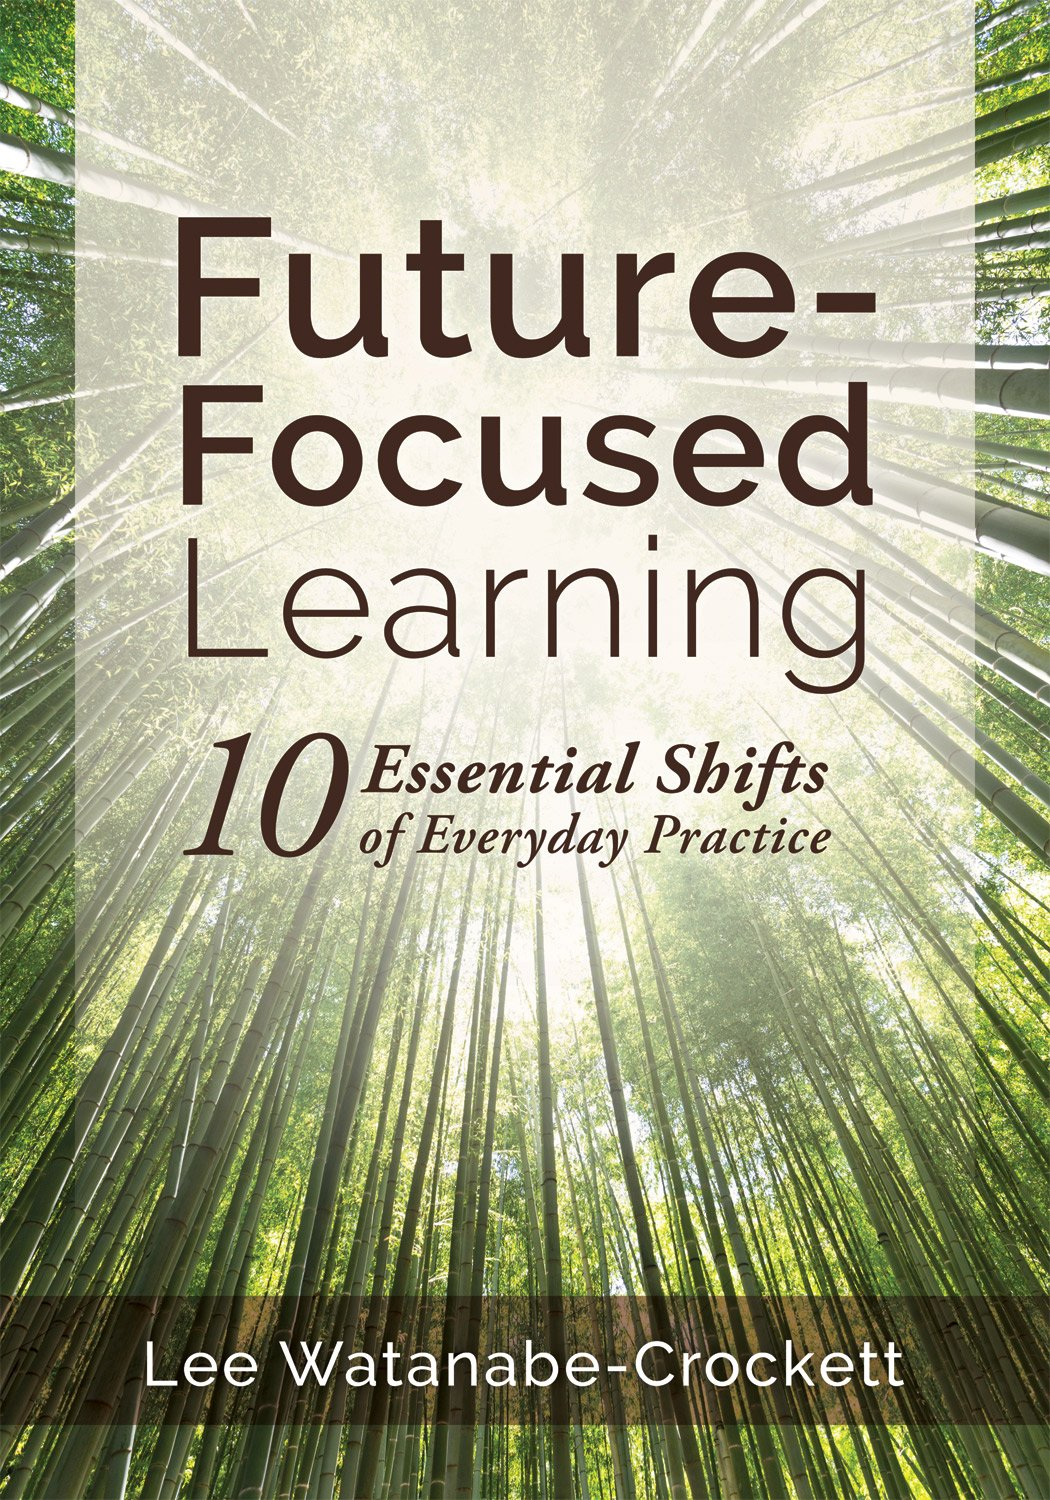 Future-focused learning : 10 essential shifts of everyday                 practice / Lee Watanabe-Crockett